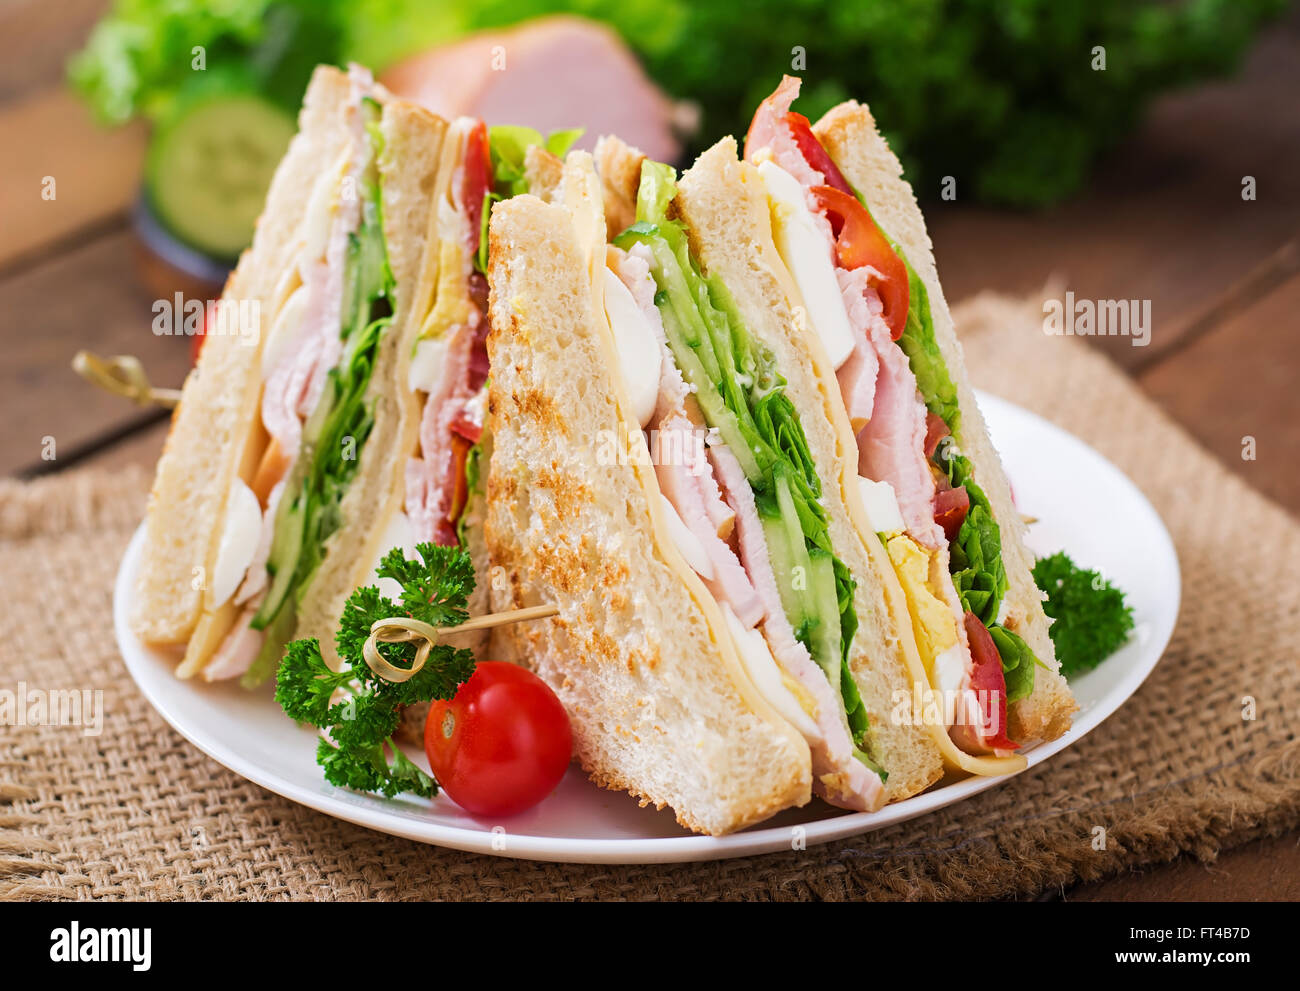 how to make club sandwich with egg